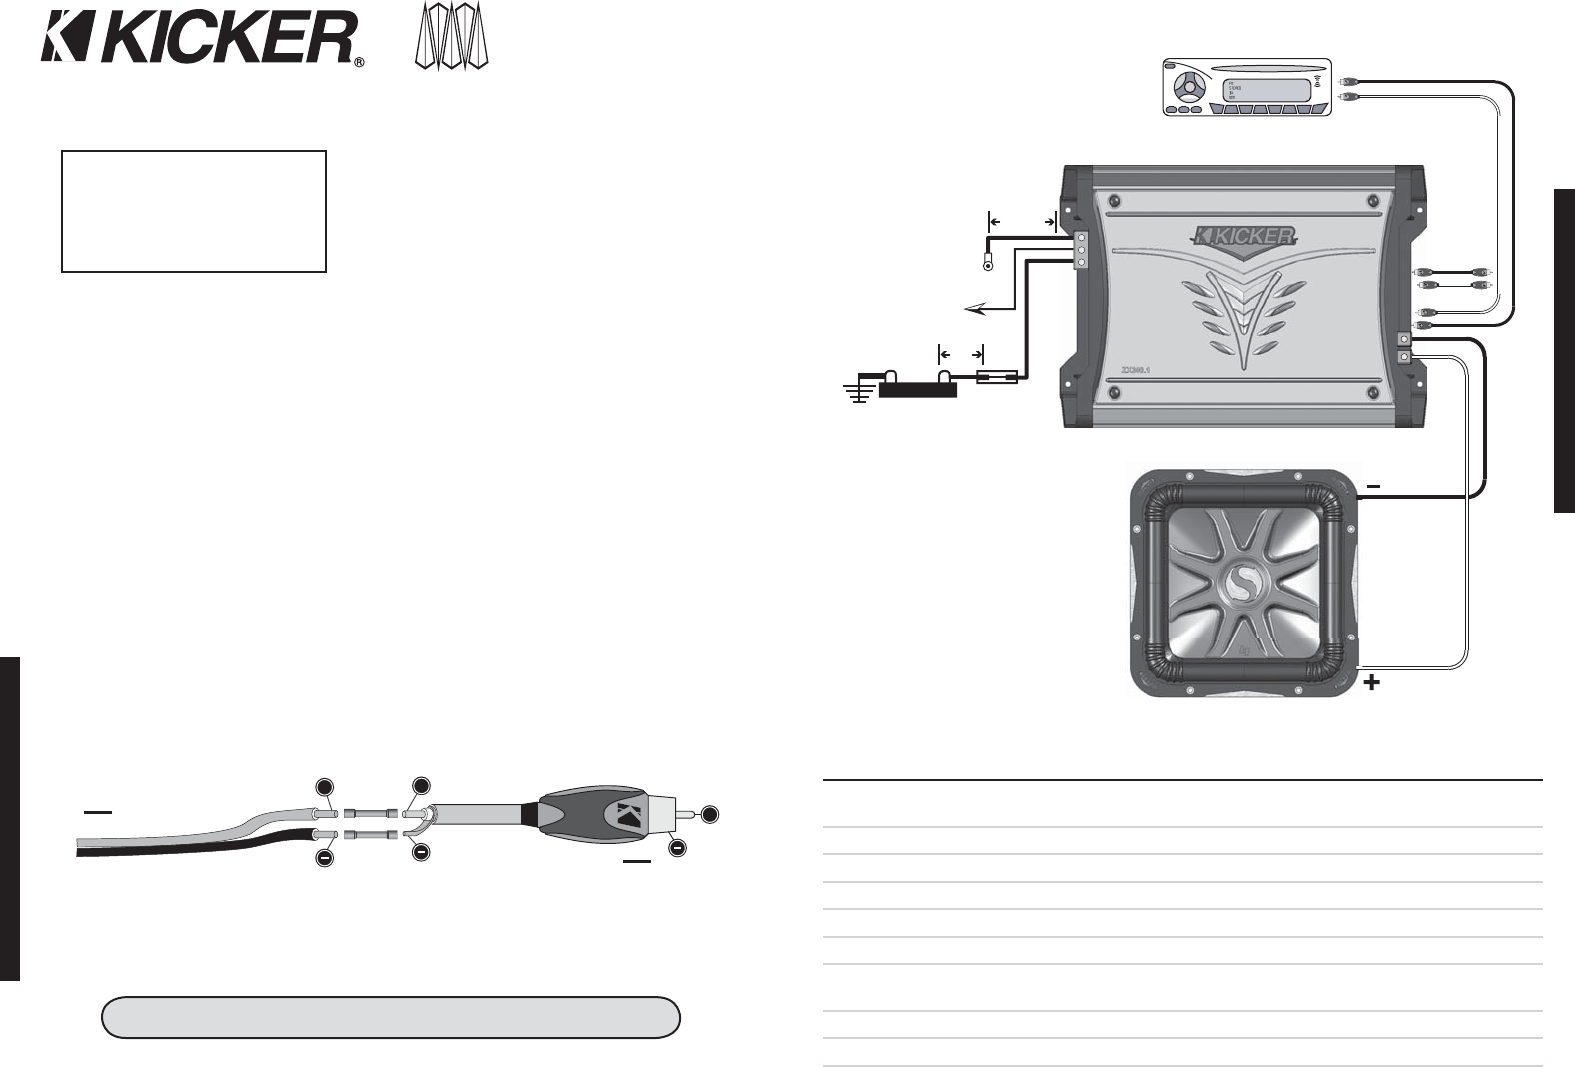 cbb5068e c461 cf14 b527 a350f3c723e2 bg2 page 2 of kicker stereo amplifier zx300 1 user guide on kicker zx300 1 wiring diagram